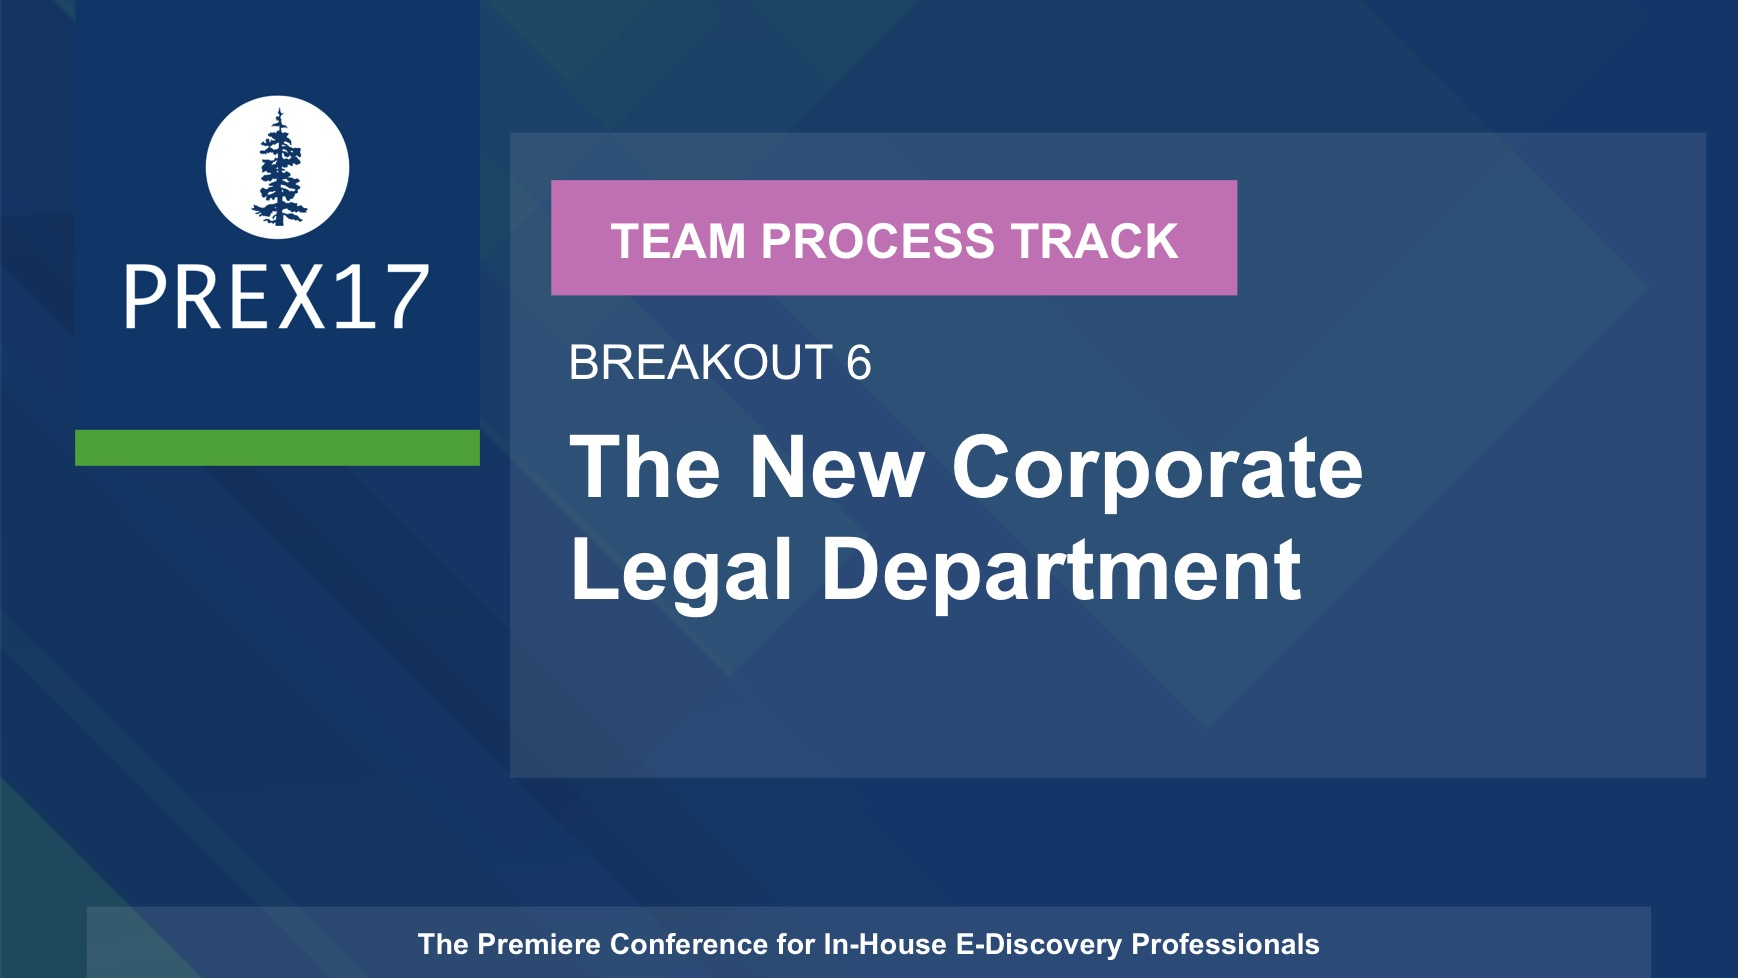 (Breakout 6 - Team Process) The New Corporate Legal Department